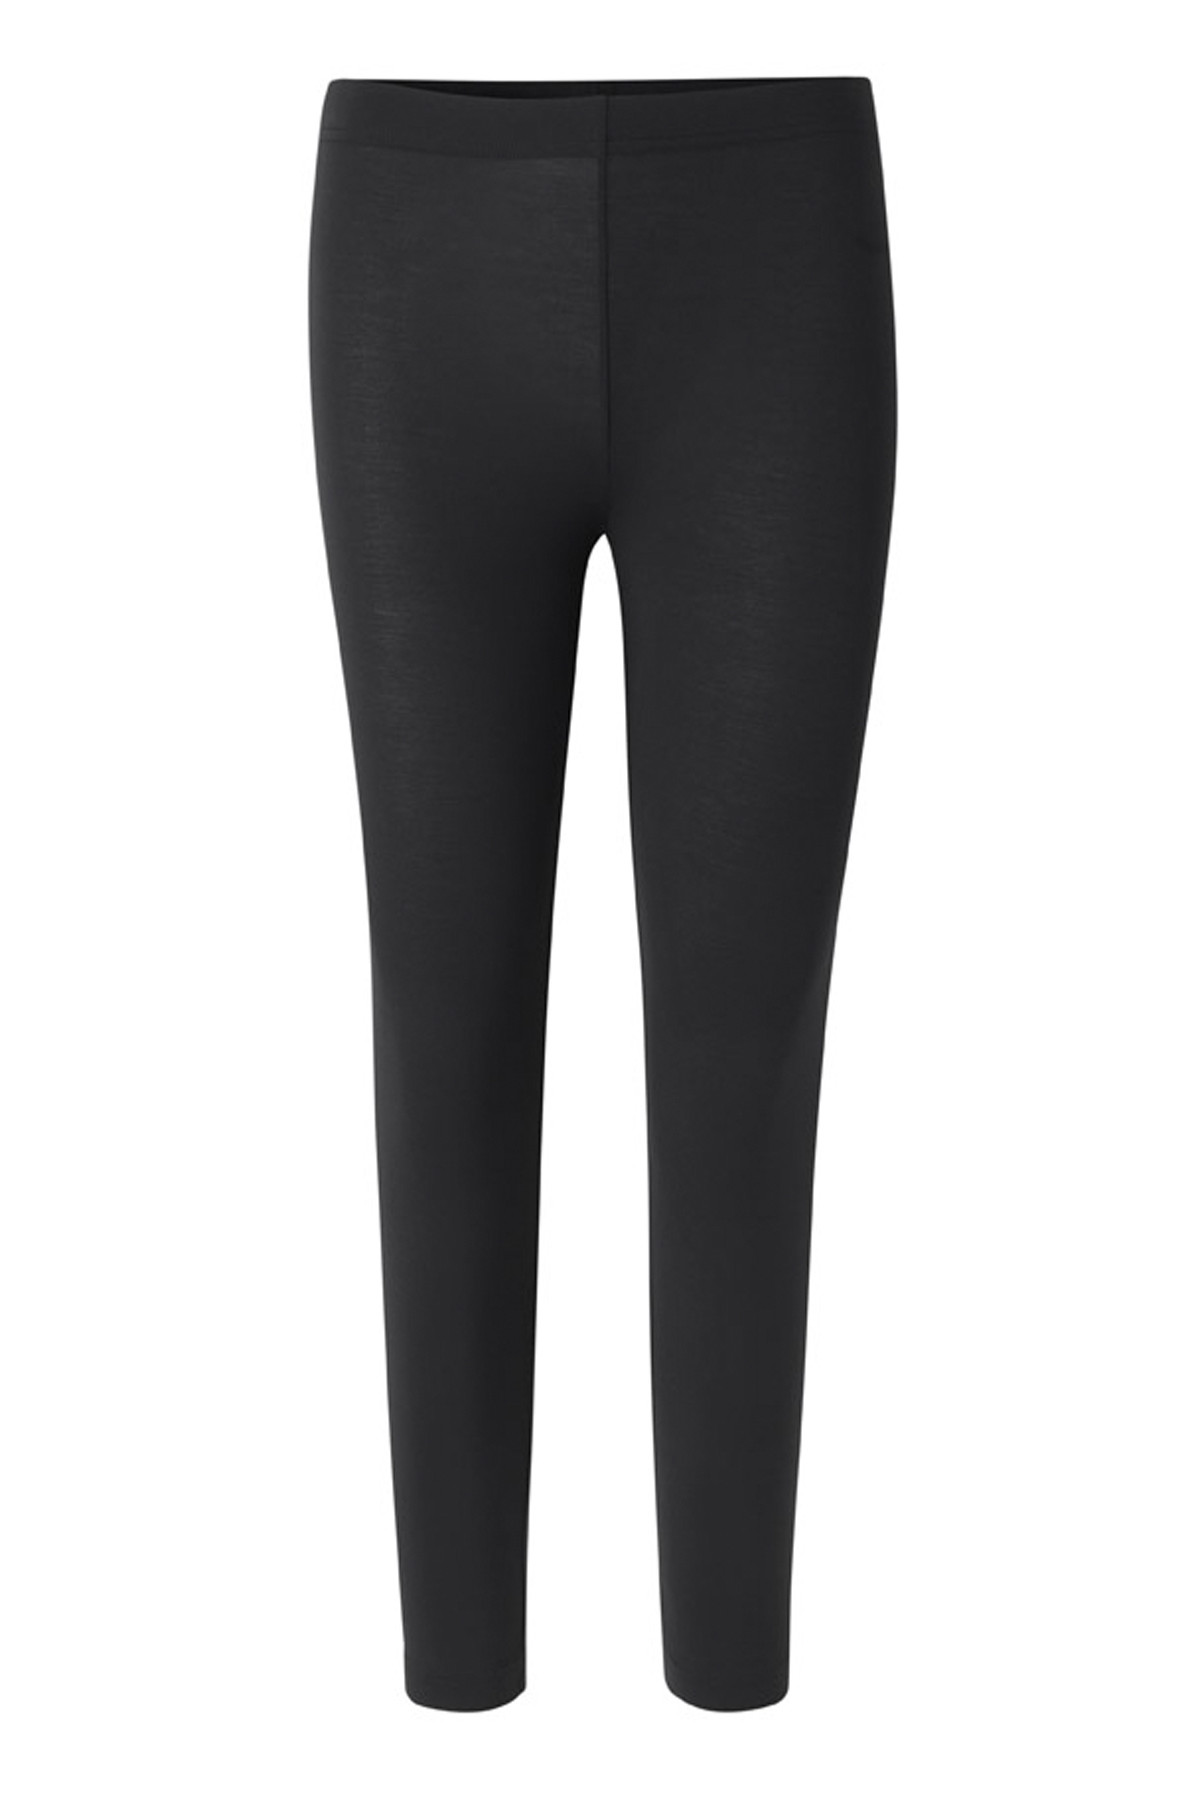 NOA NOA LEGGINGS 1-9384-1 00000 (Black, XXS)